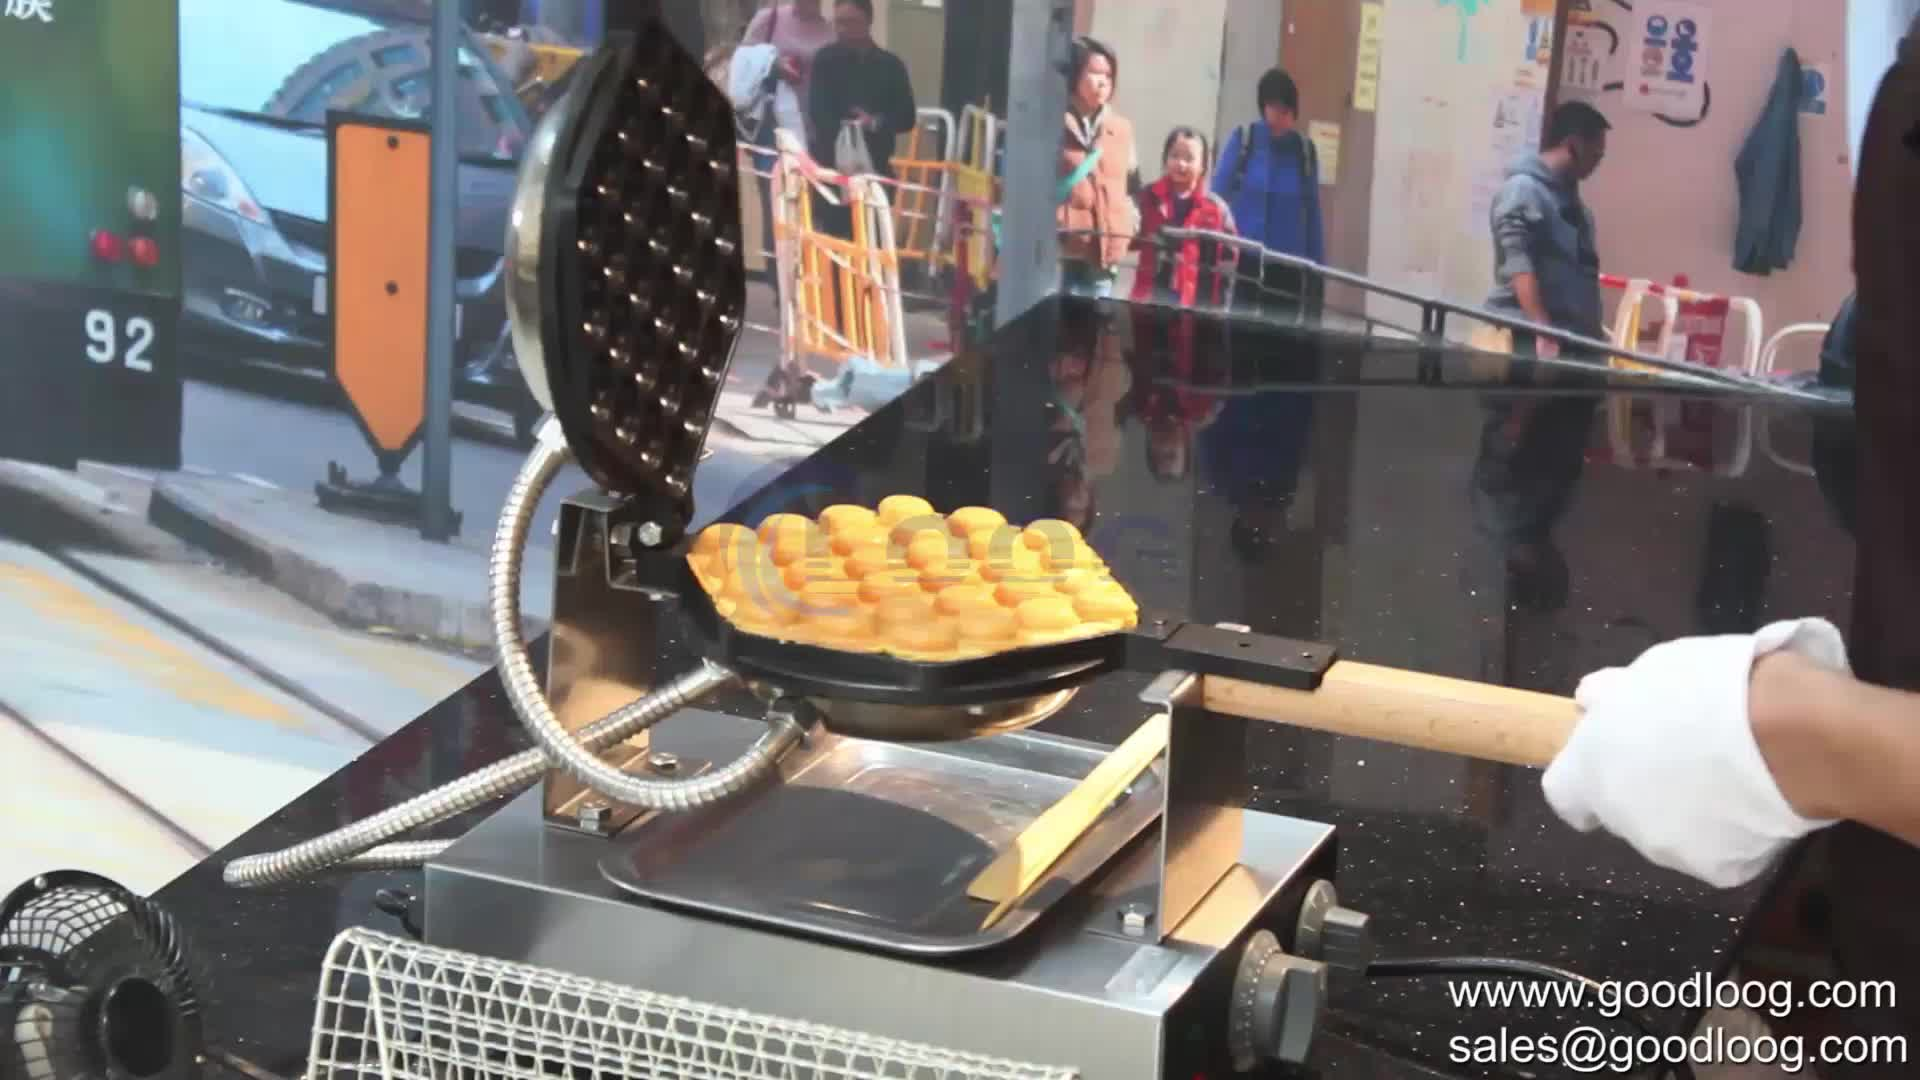 Commercial Snack Kitchen Multifunction Muffin Making Machine Household Electric Multi Belgium Waffle Maker- Mini Egg Maker